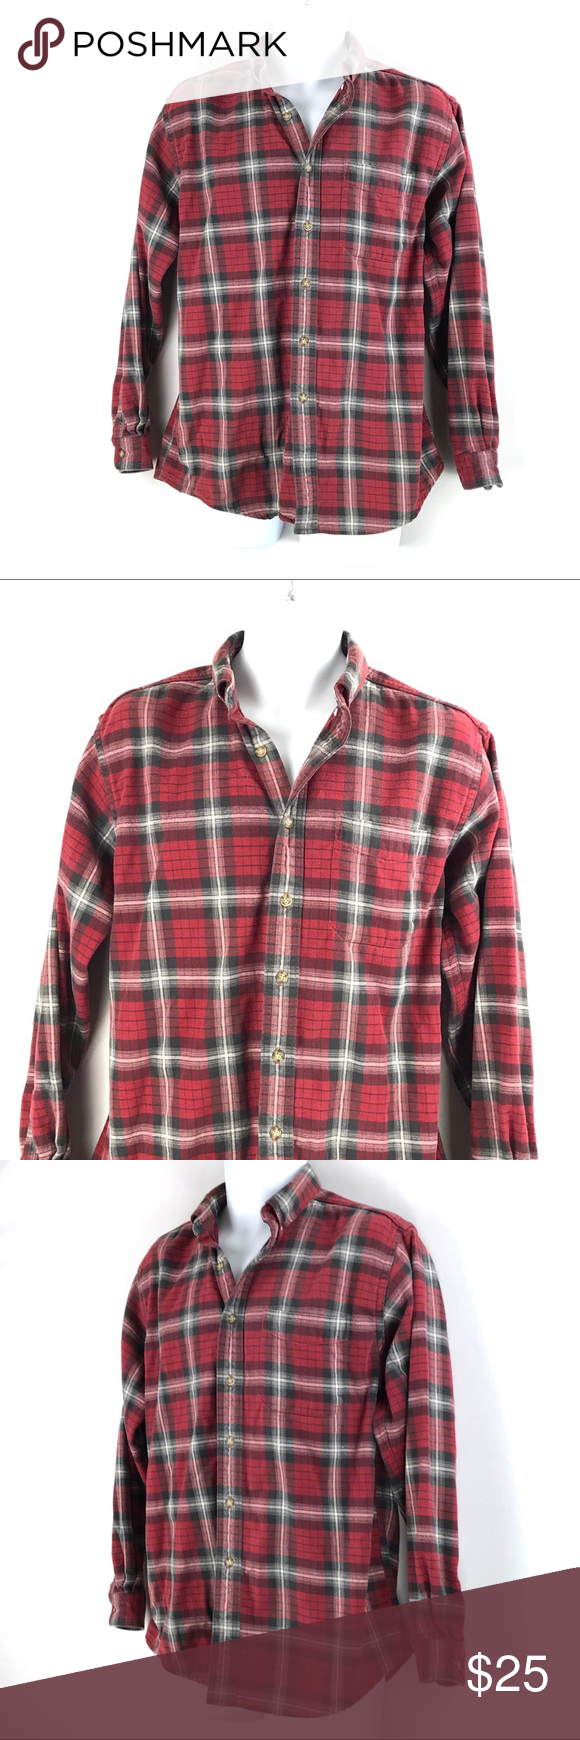 4b28aa0c47c L.L. Bean | Red Plaid Flannel Button Down Shirt L.L. Bean - Men's Plaid  Flannel Button